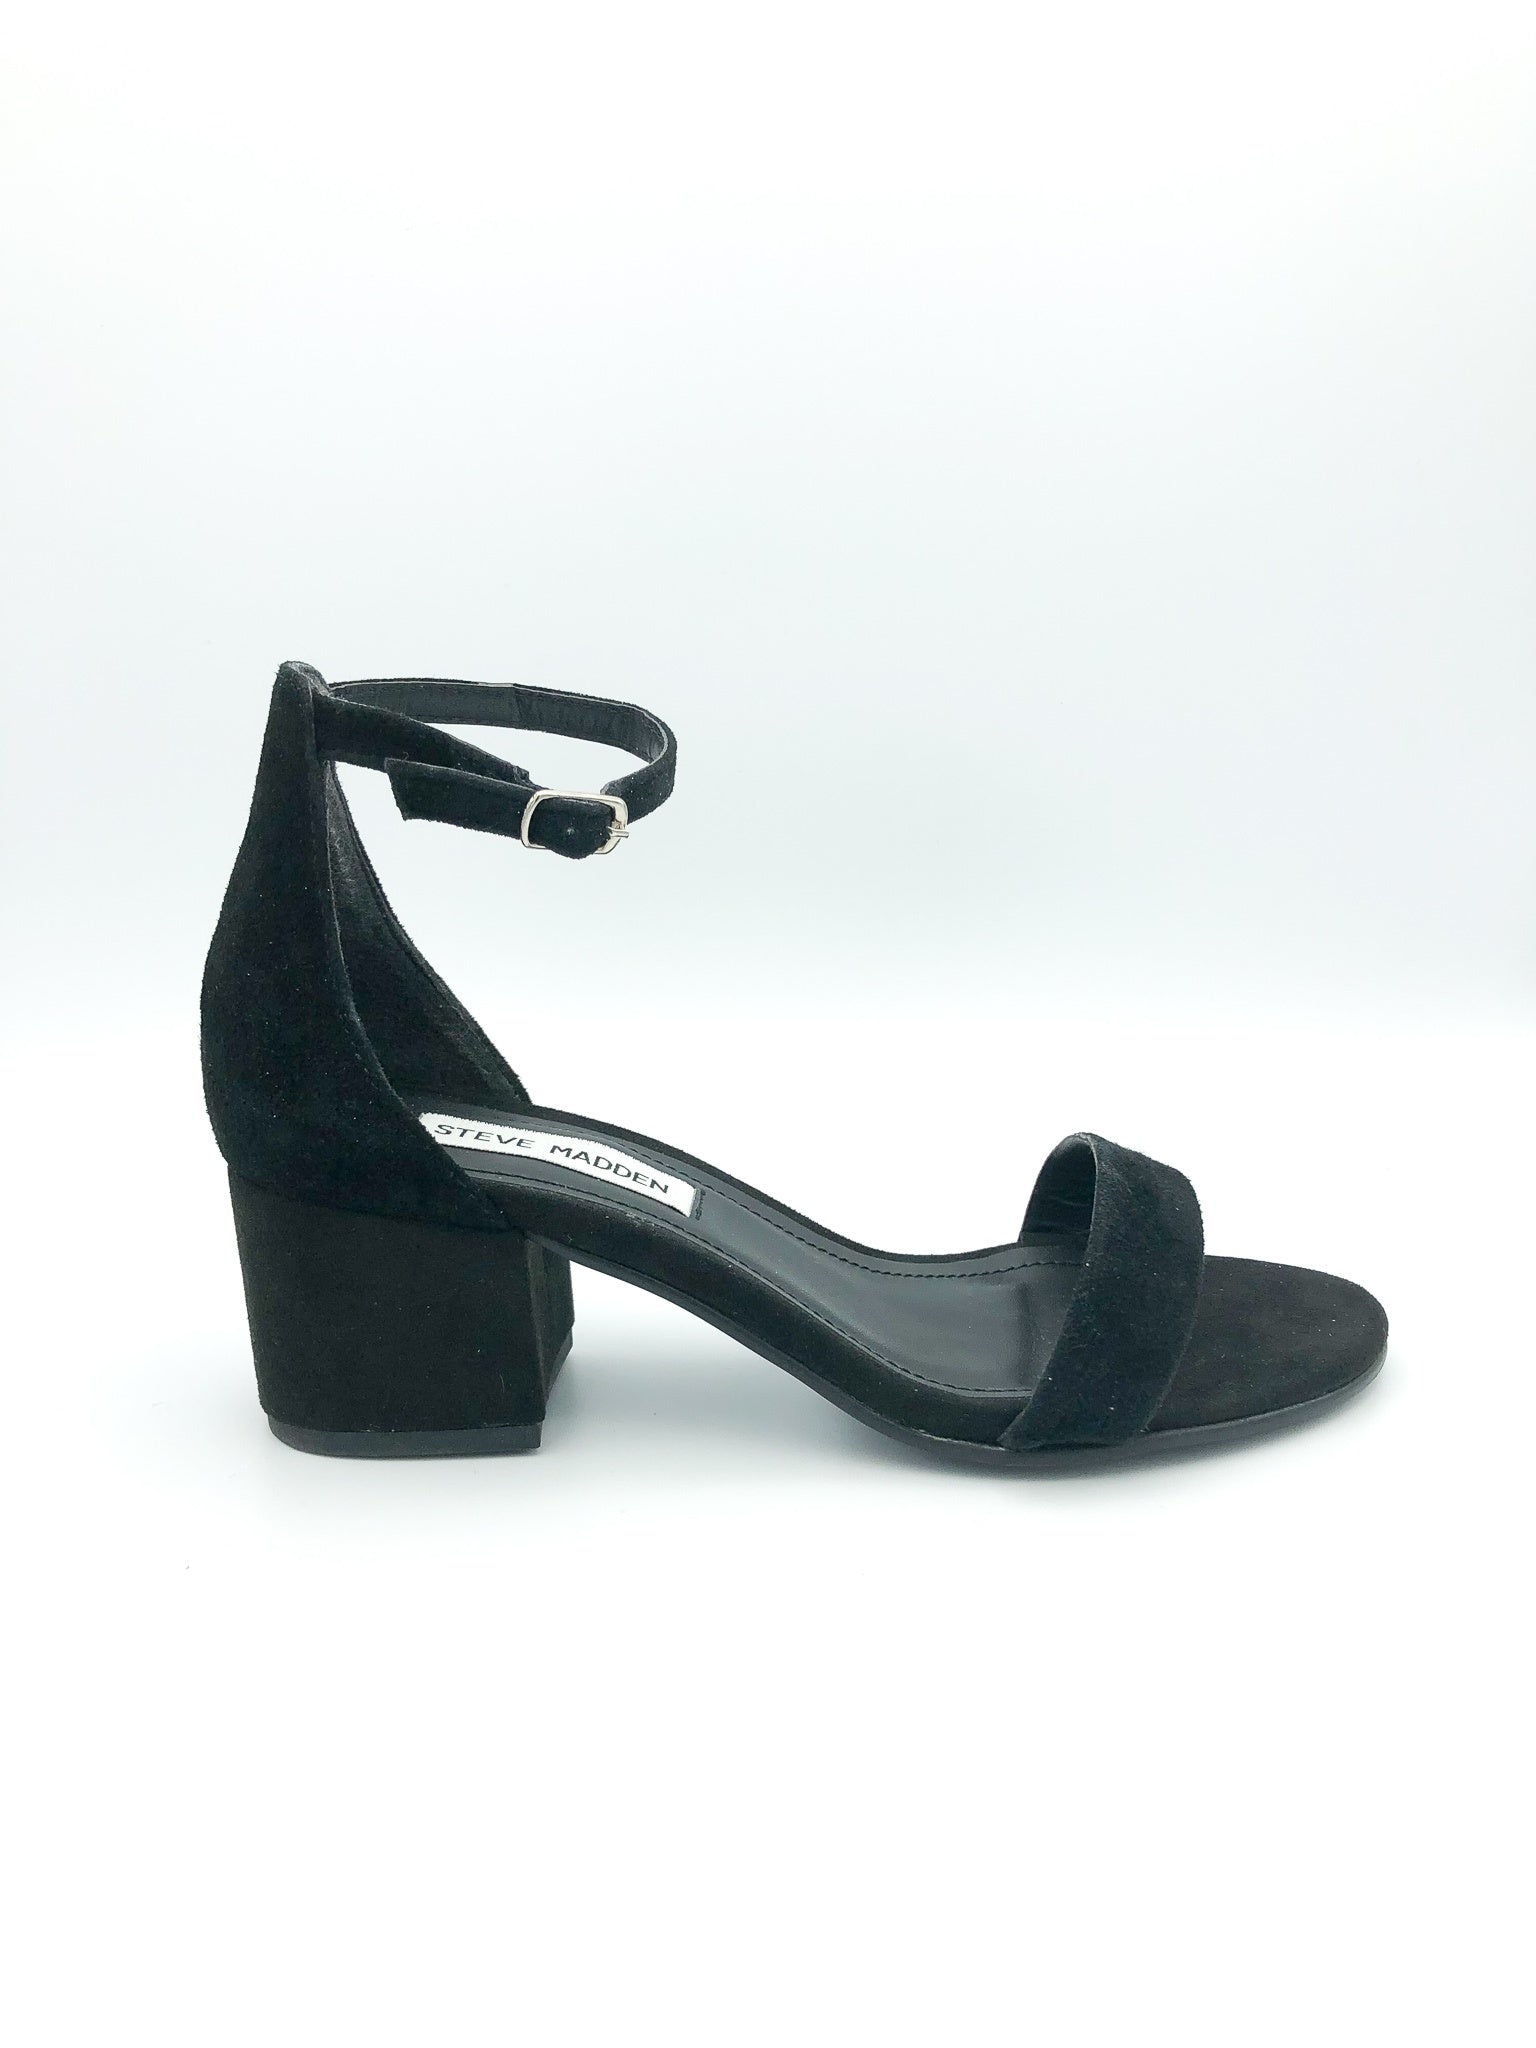 STEVE MADDEN- IRENEE IN BLACK